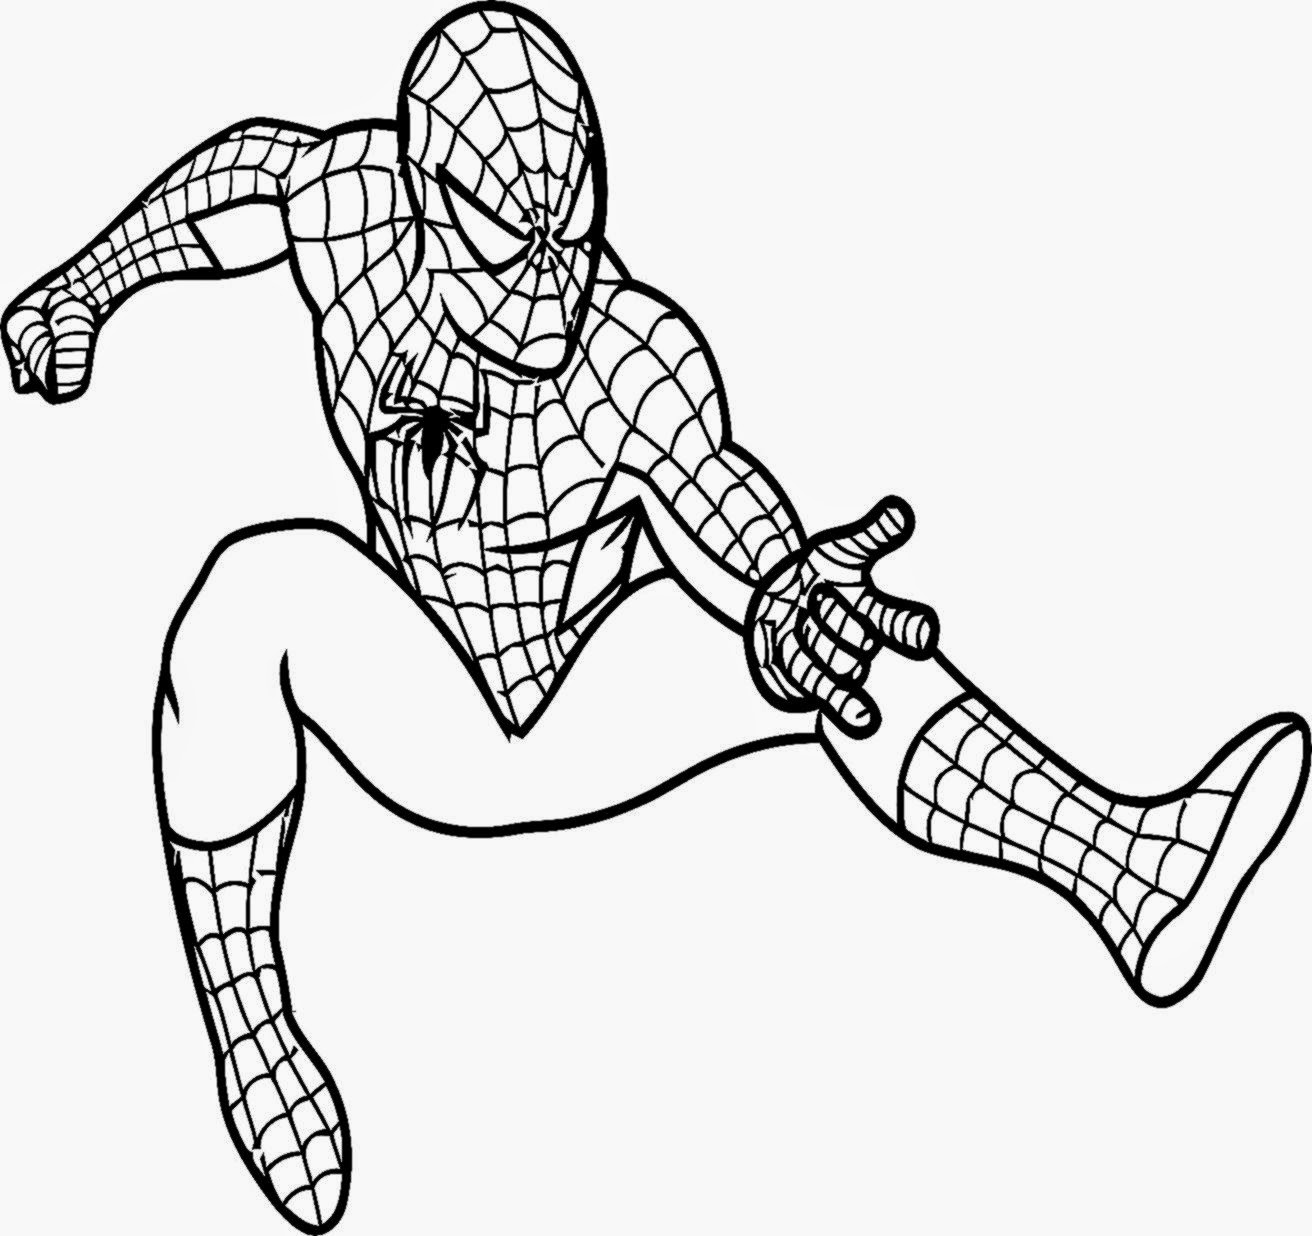 Adult Beauty Coloring Pages Of Spiderman Images beauty spiderman style marvel coloring pages swinging on web free printable for kids 1000 gallery images